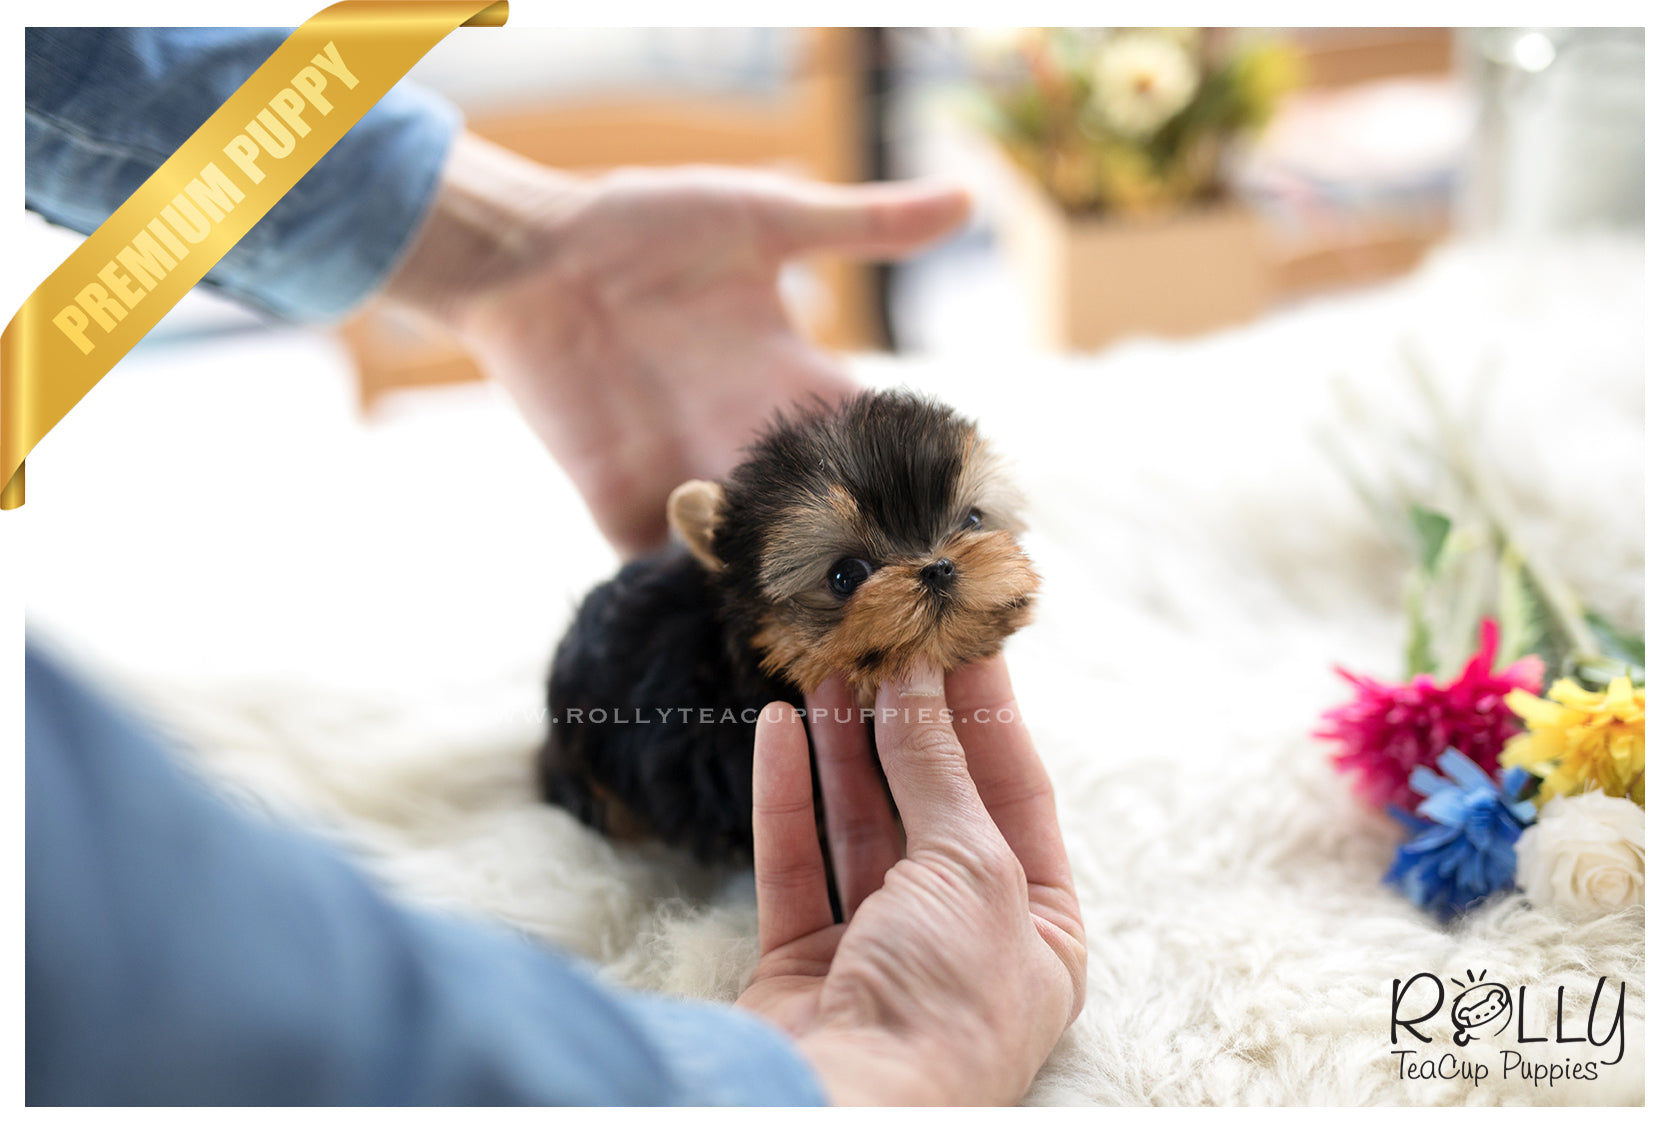 SOLD to Young) Sadie - Yorkie  F– Rolly Teacup Puppies